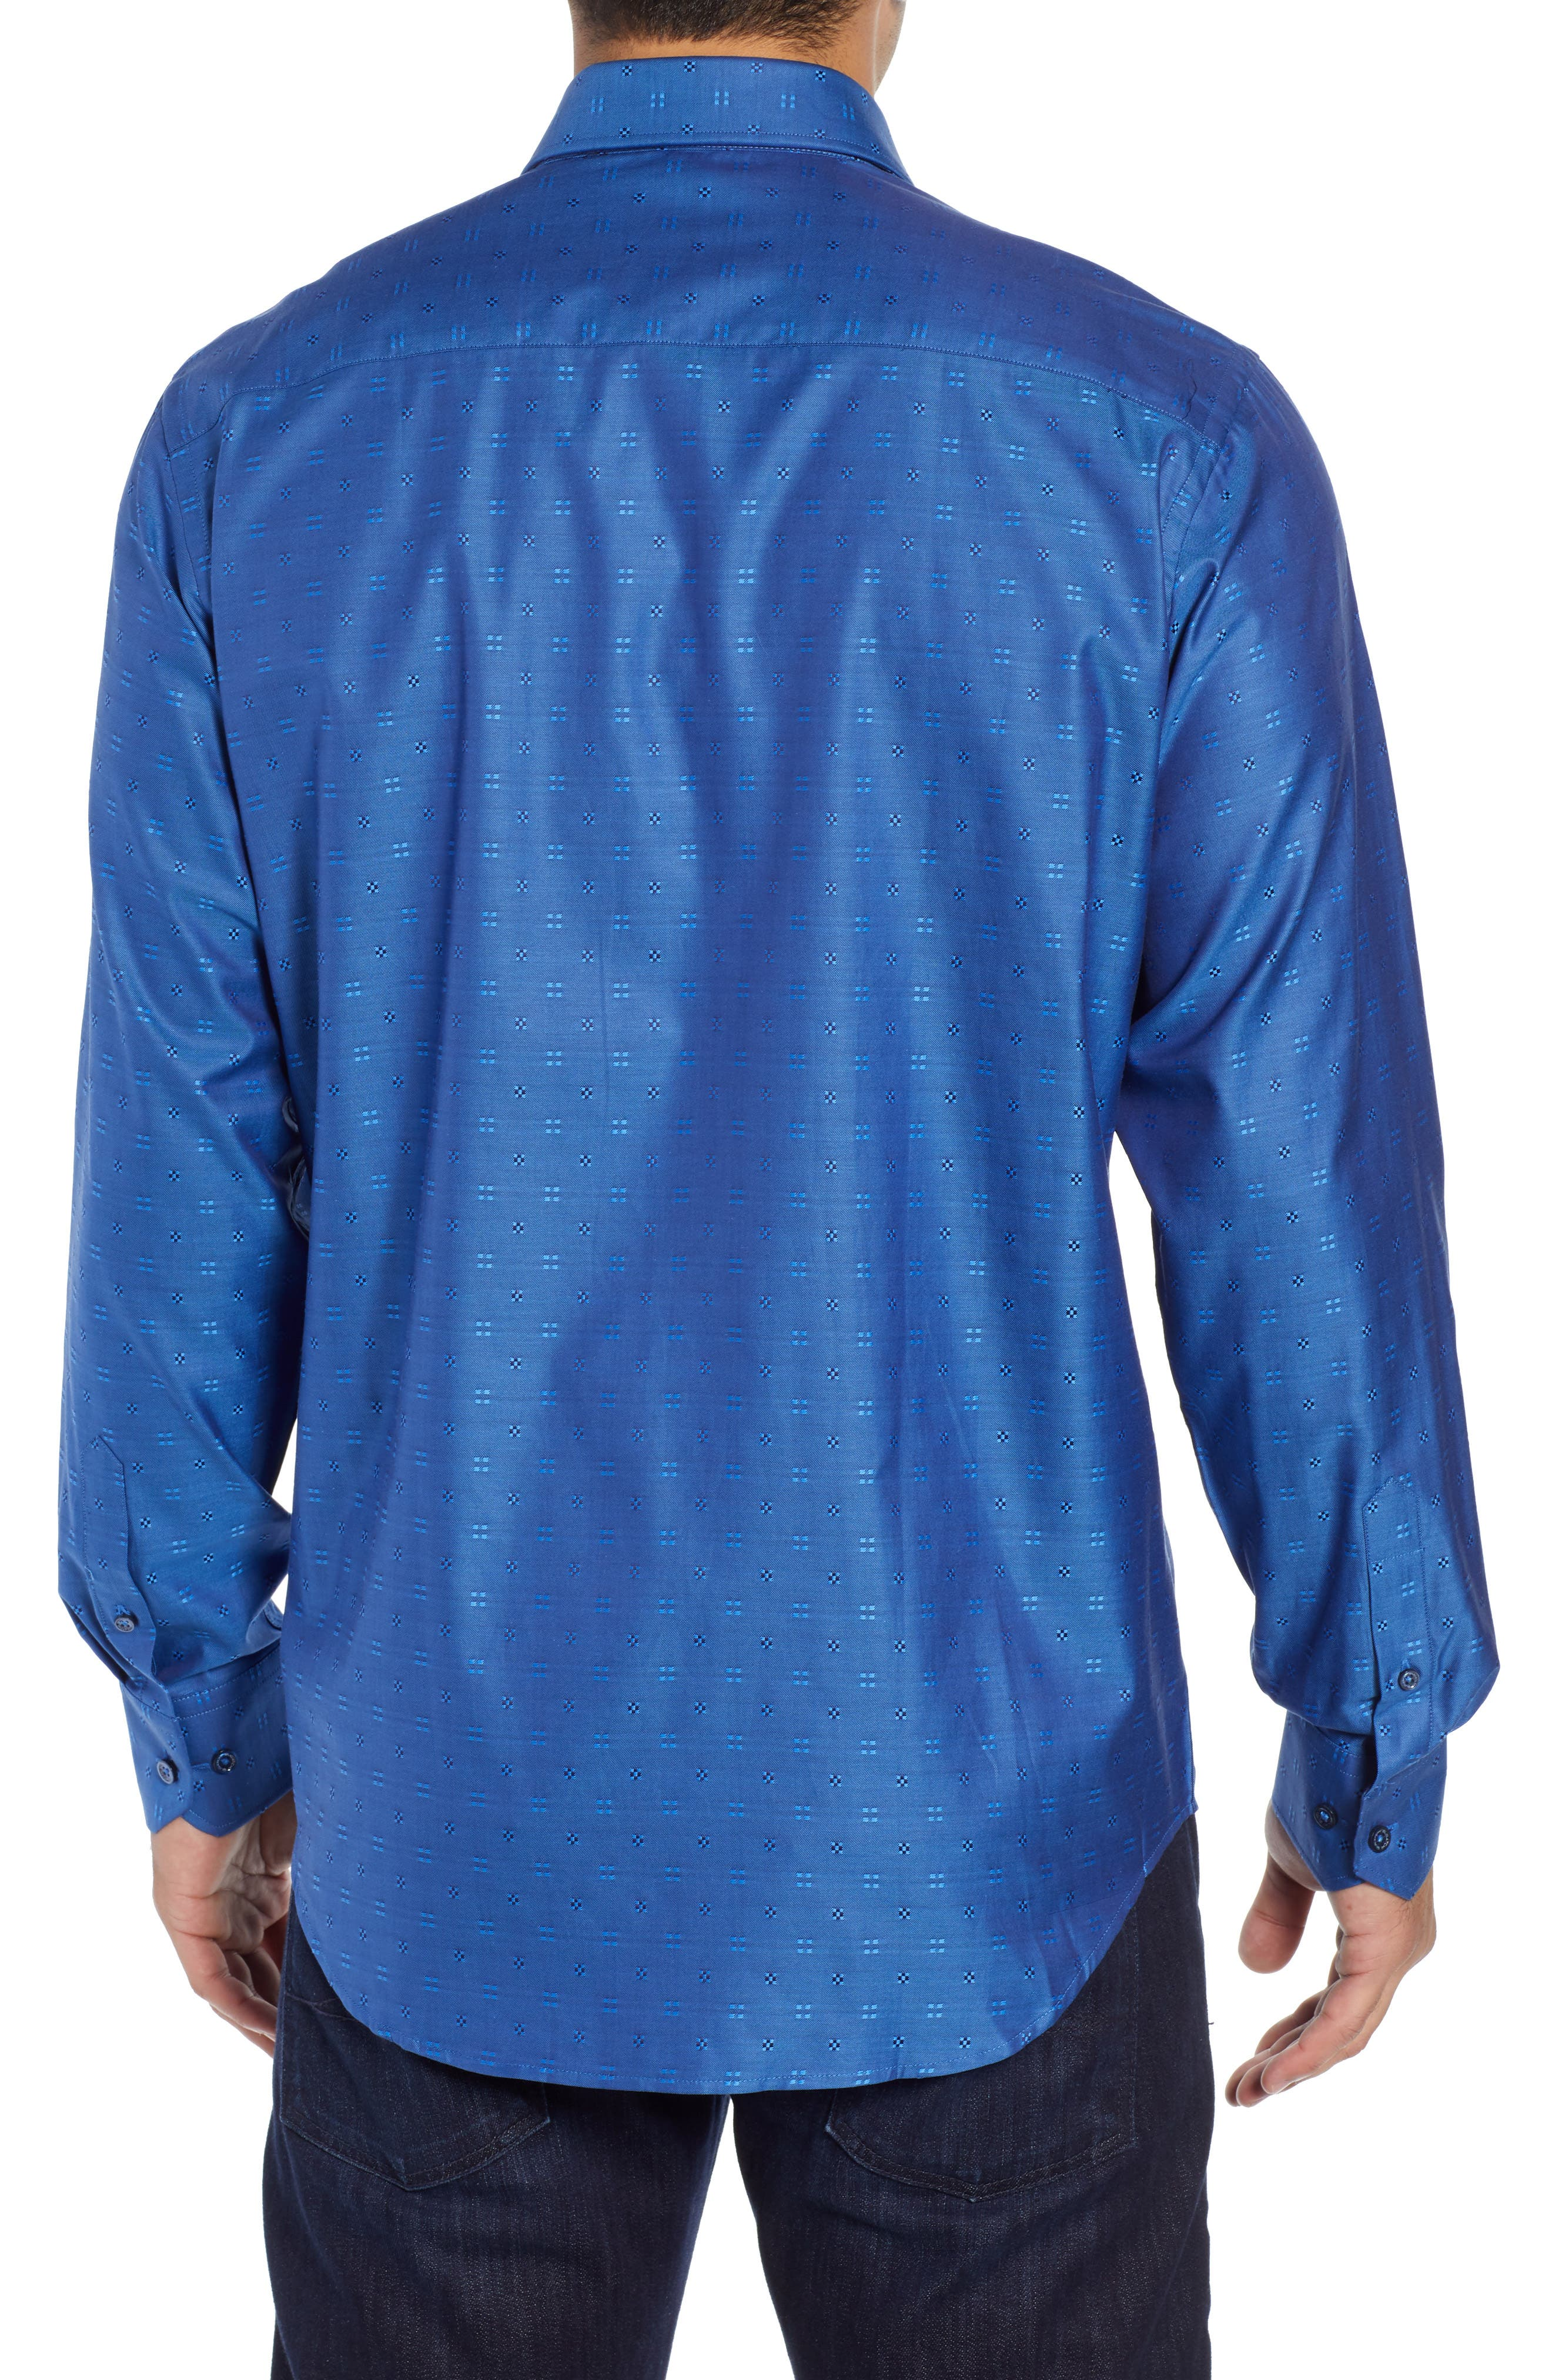 BUGATCHI,                             Classic Fit Embroidered Sport Shirt,                             Alternate thumbnail 3, color,                             CLASSIC BLUE